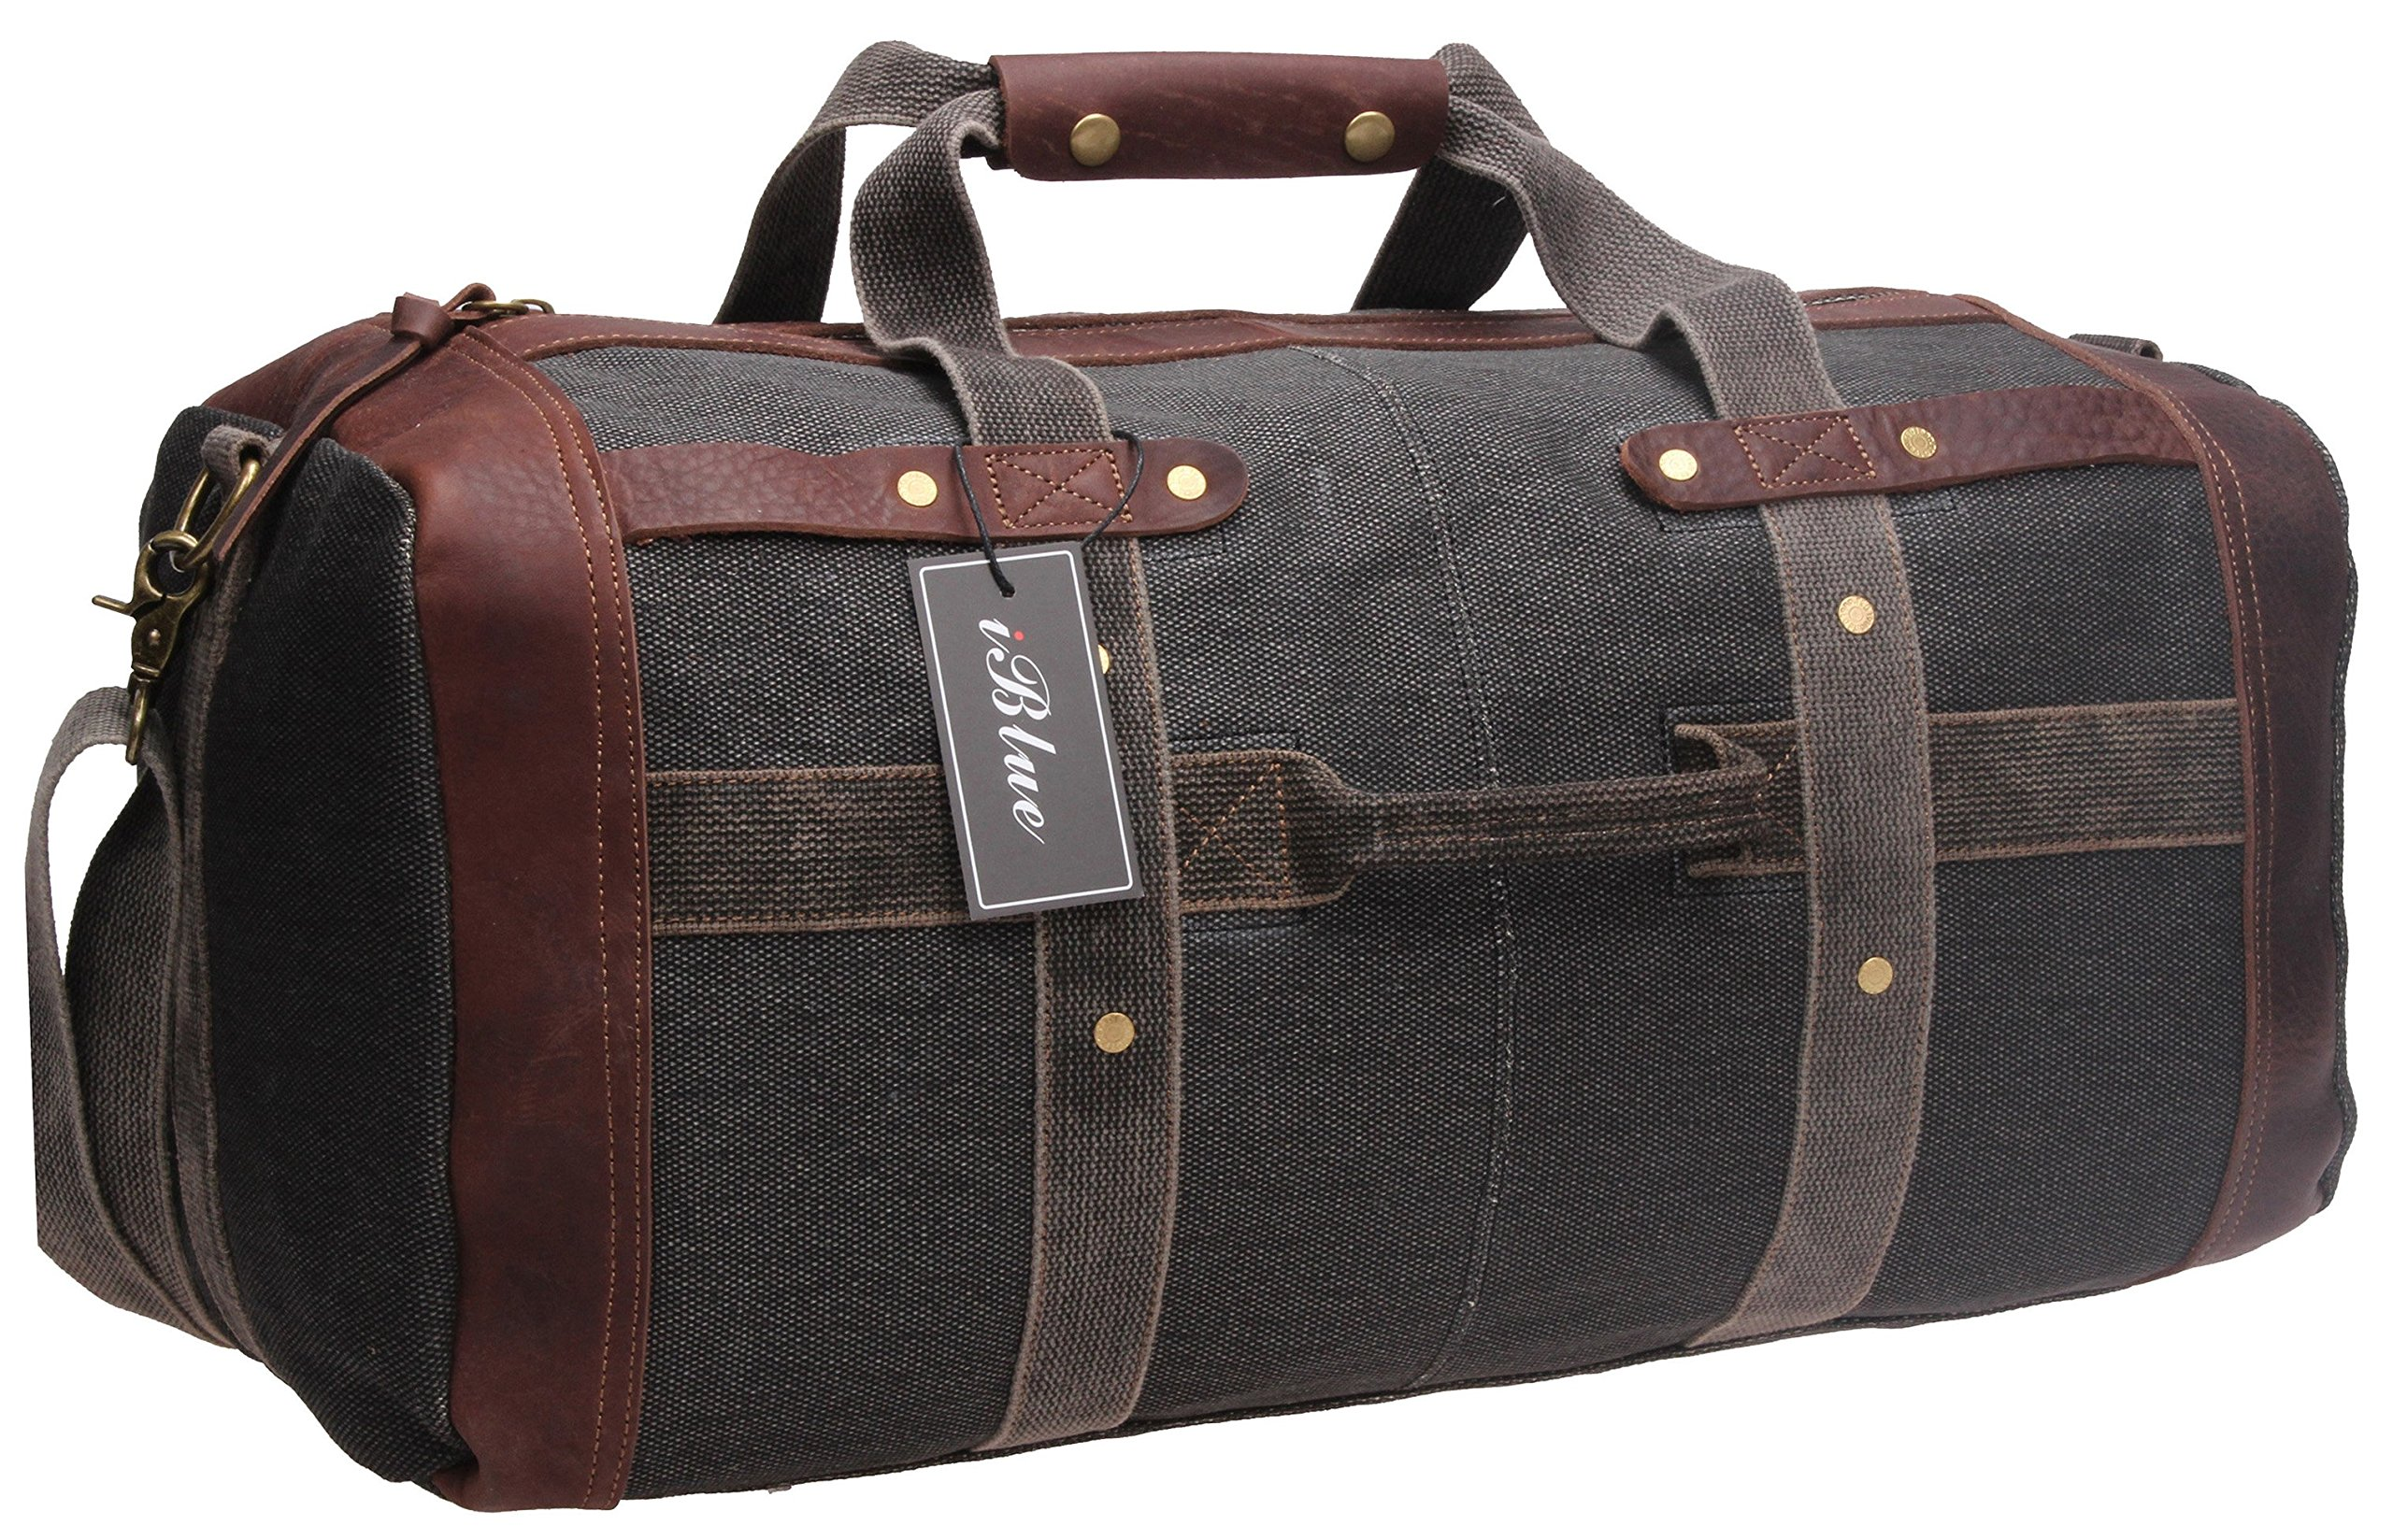 iblue Weekend Bag Travel Duffel Bags for Men Canvas Carry On #B007 (XL, Grey)